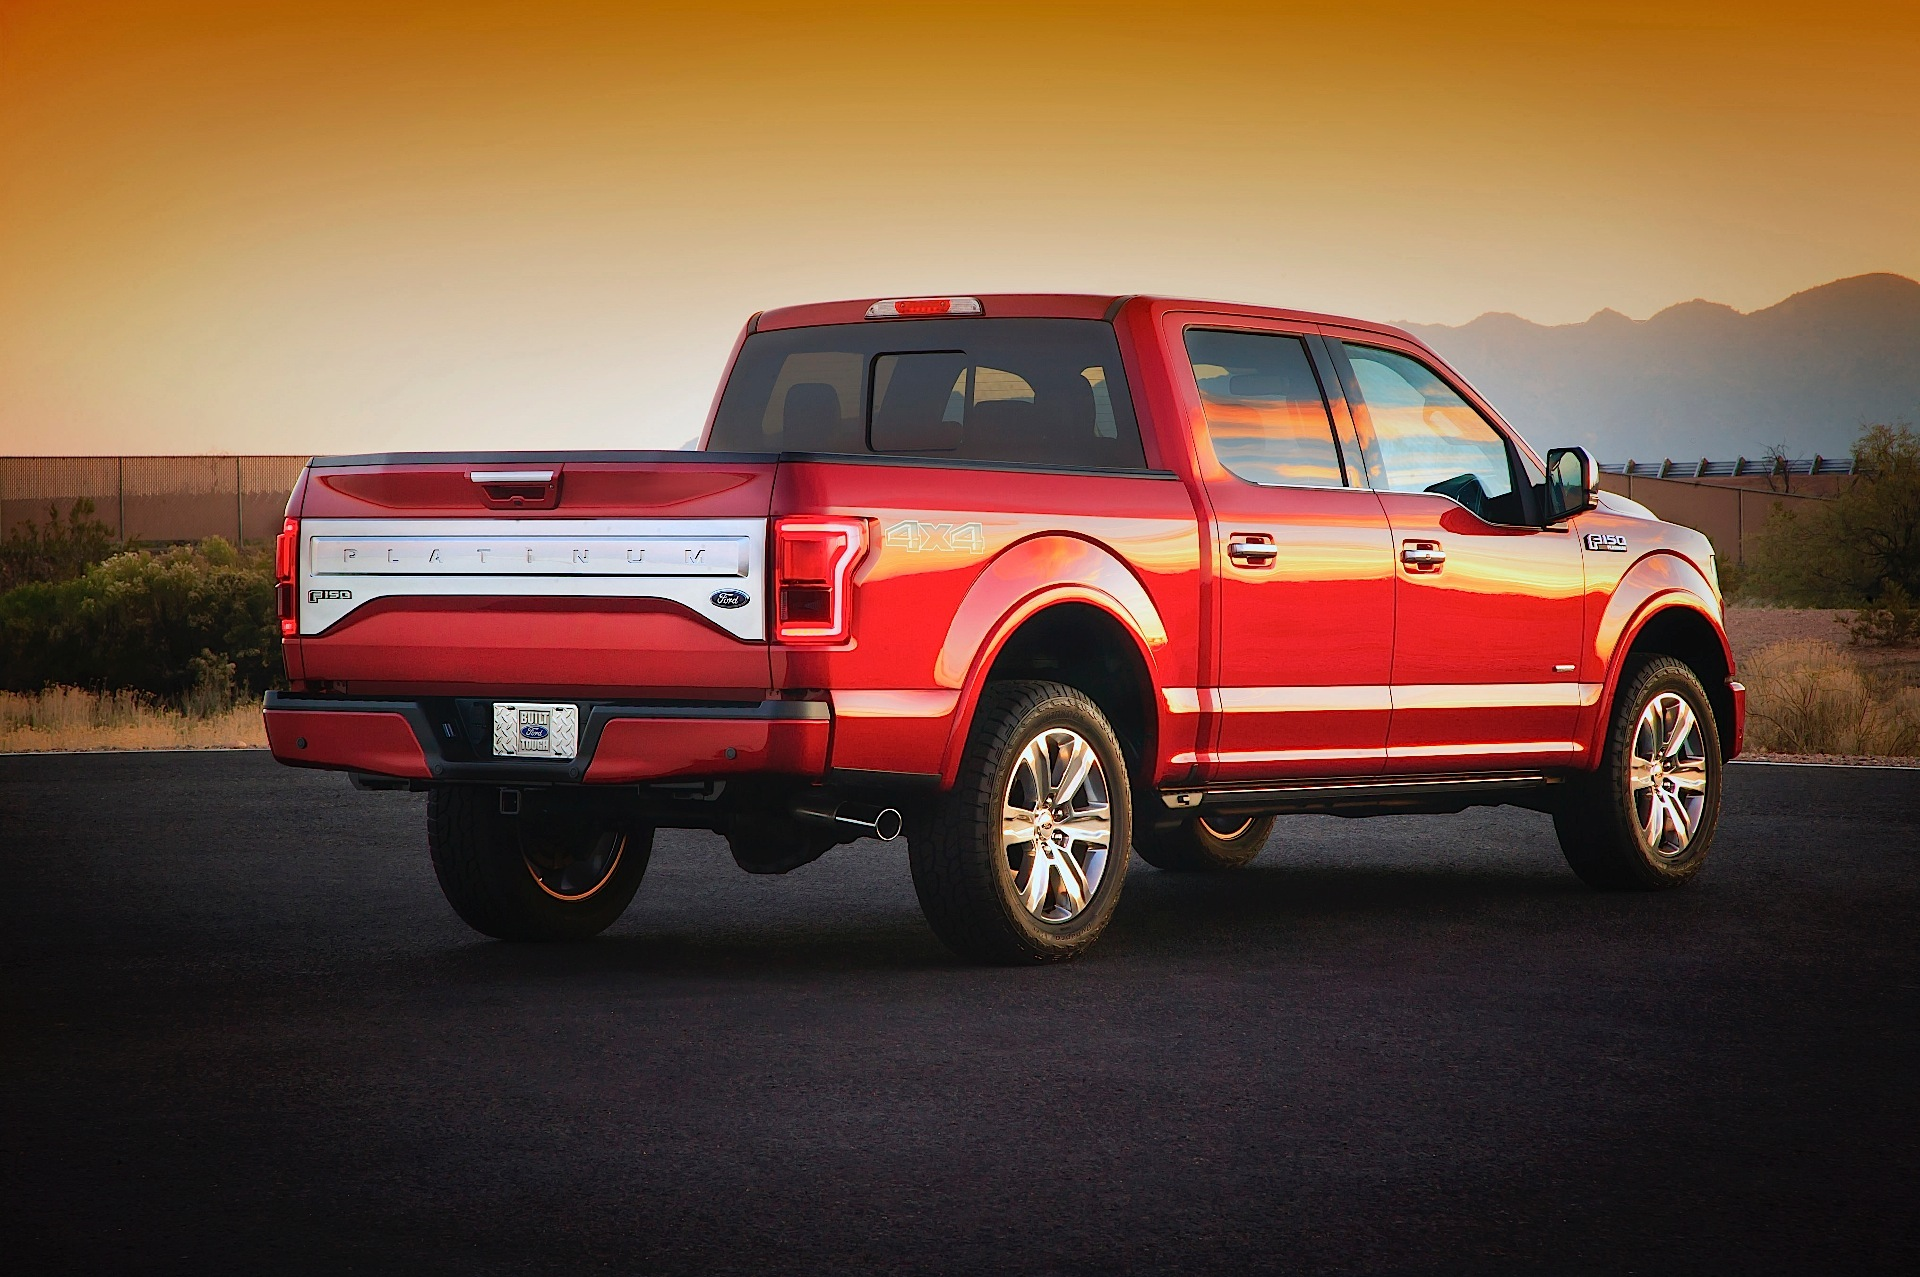 Ford Atlas 2017 >> FORD F-150 Super Crew - 2014, 2015, 2016, 2017 - autoevolution